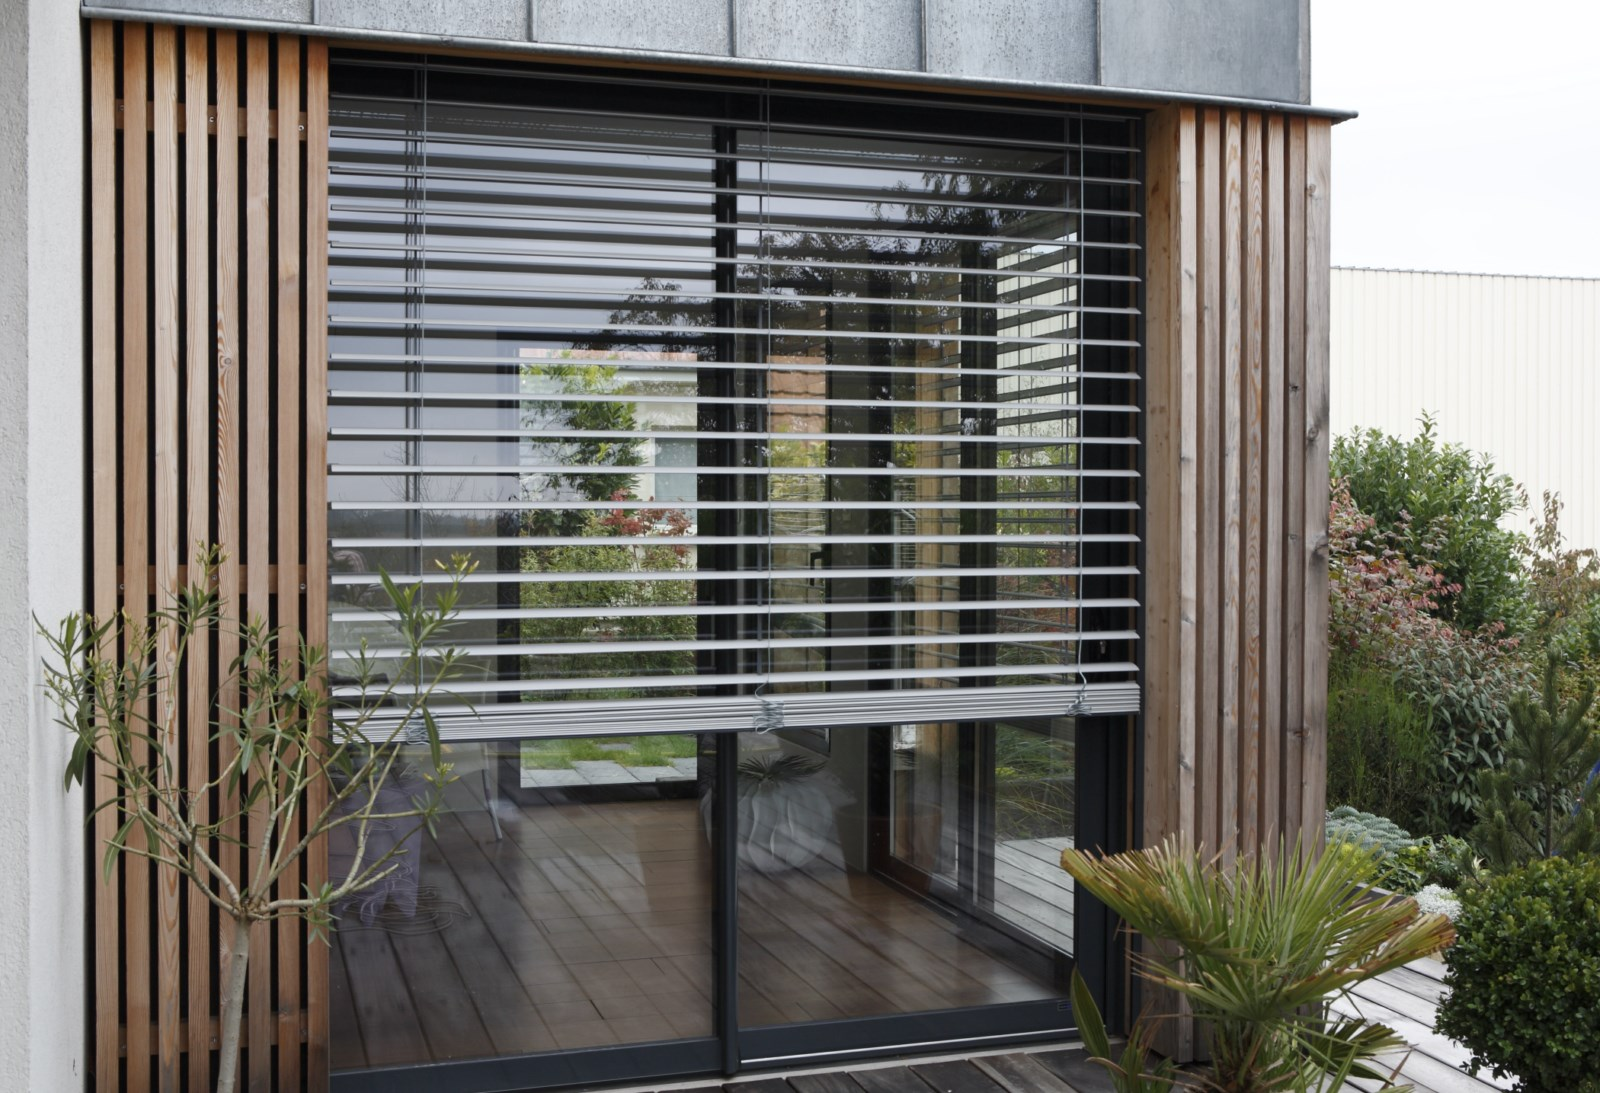 actualit produit le bso aluminium brise soleil orientable int grable en v randa coladis. Black Bedroom Furniture Sets. Home Design Ideas